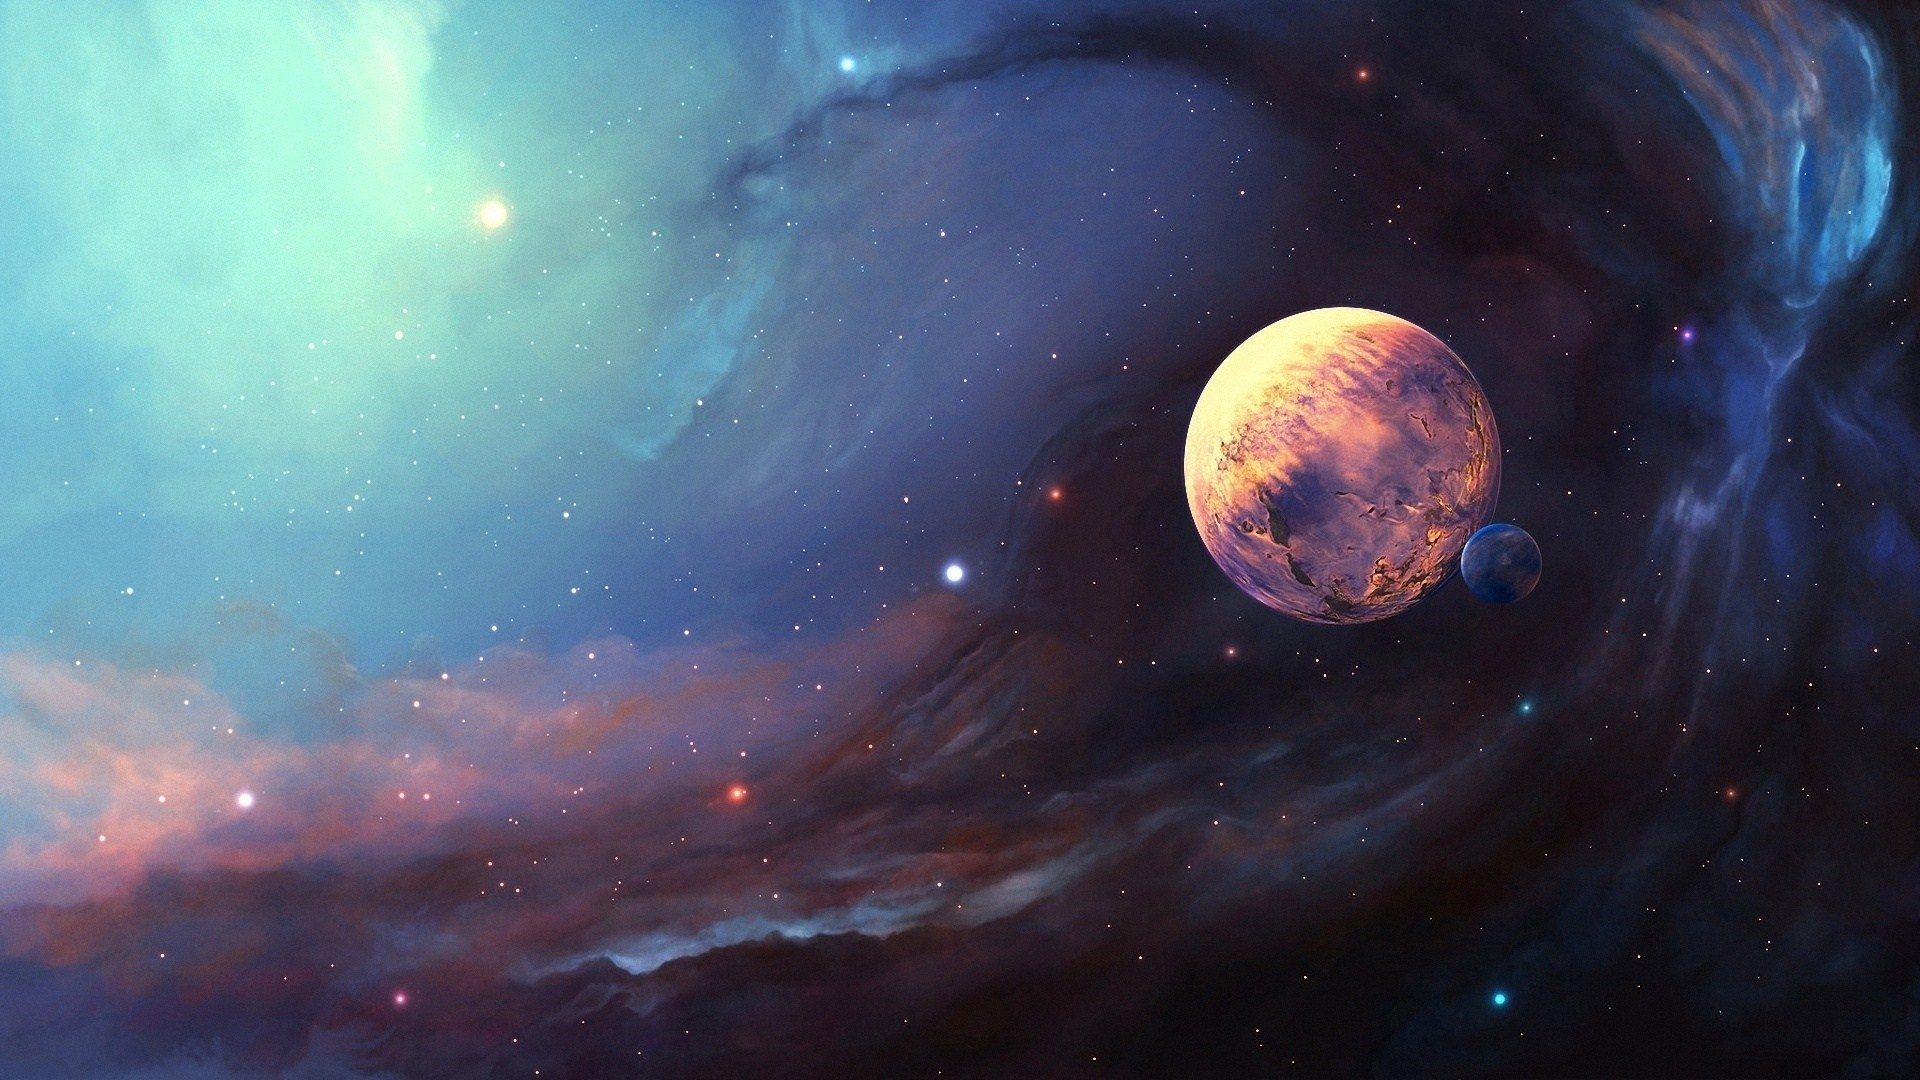 Space Nebula Planet Moon Stars Art